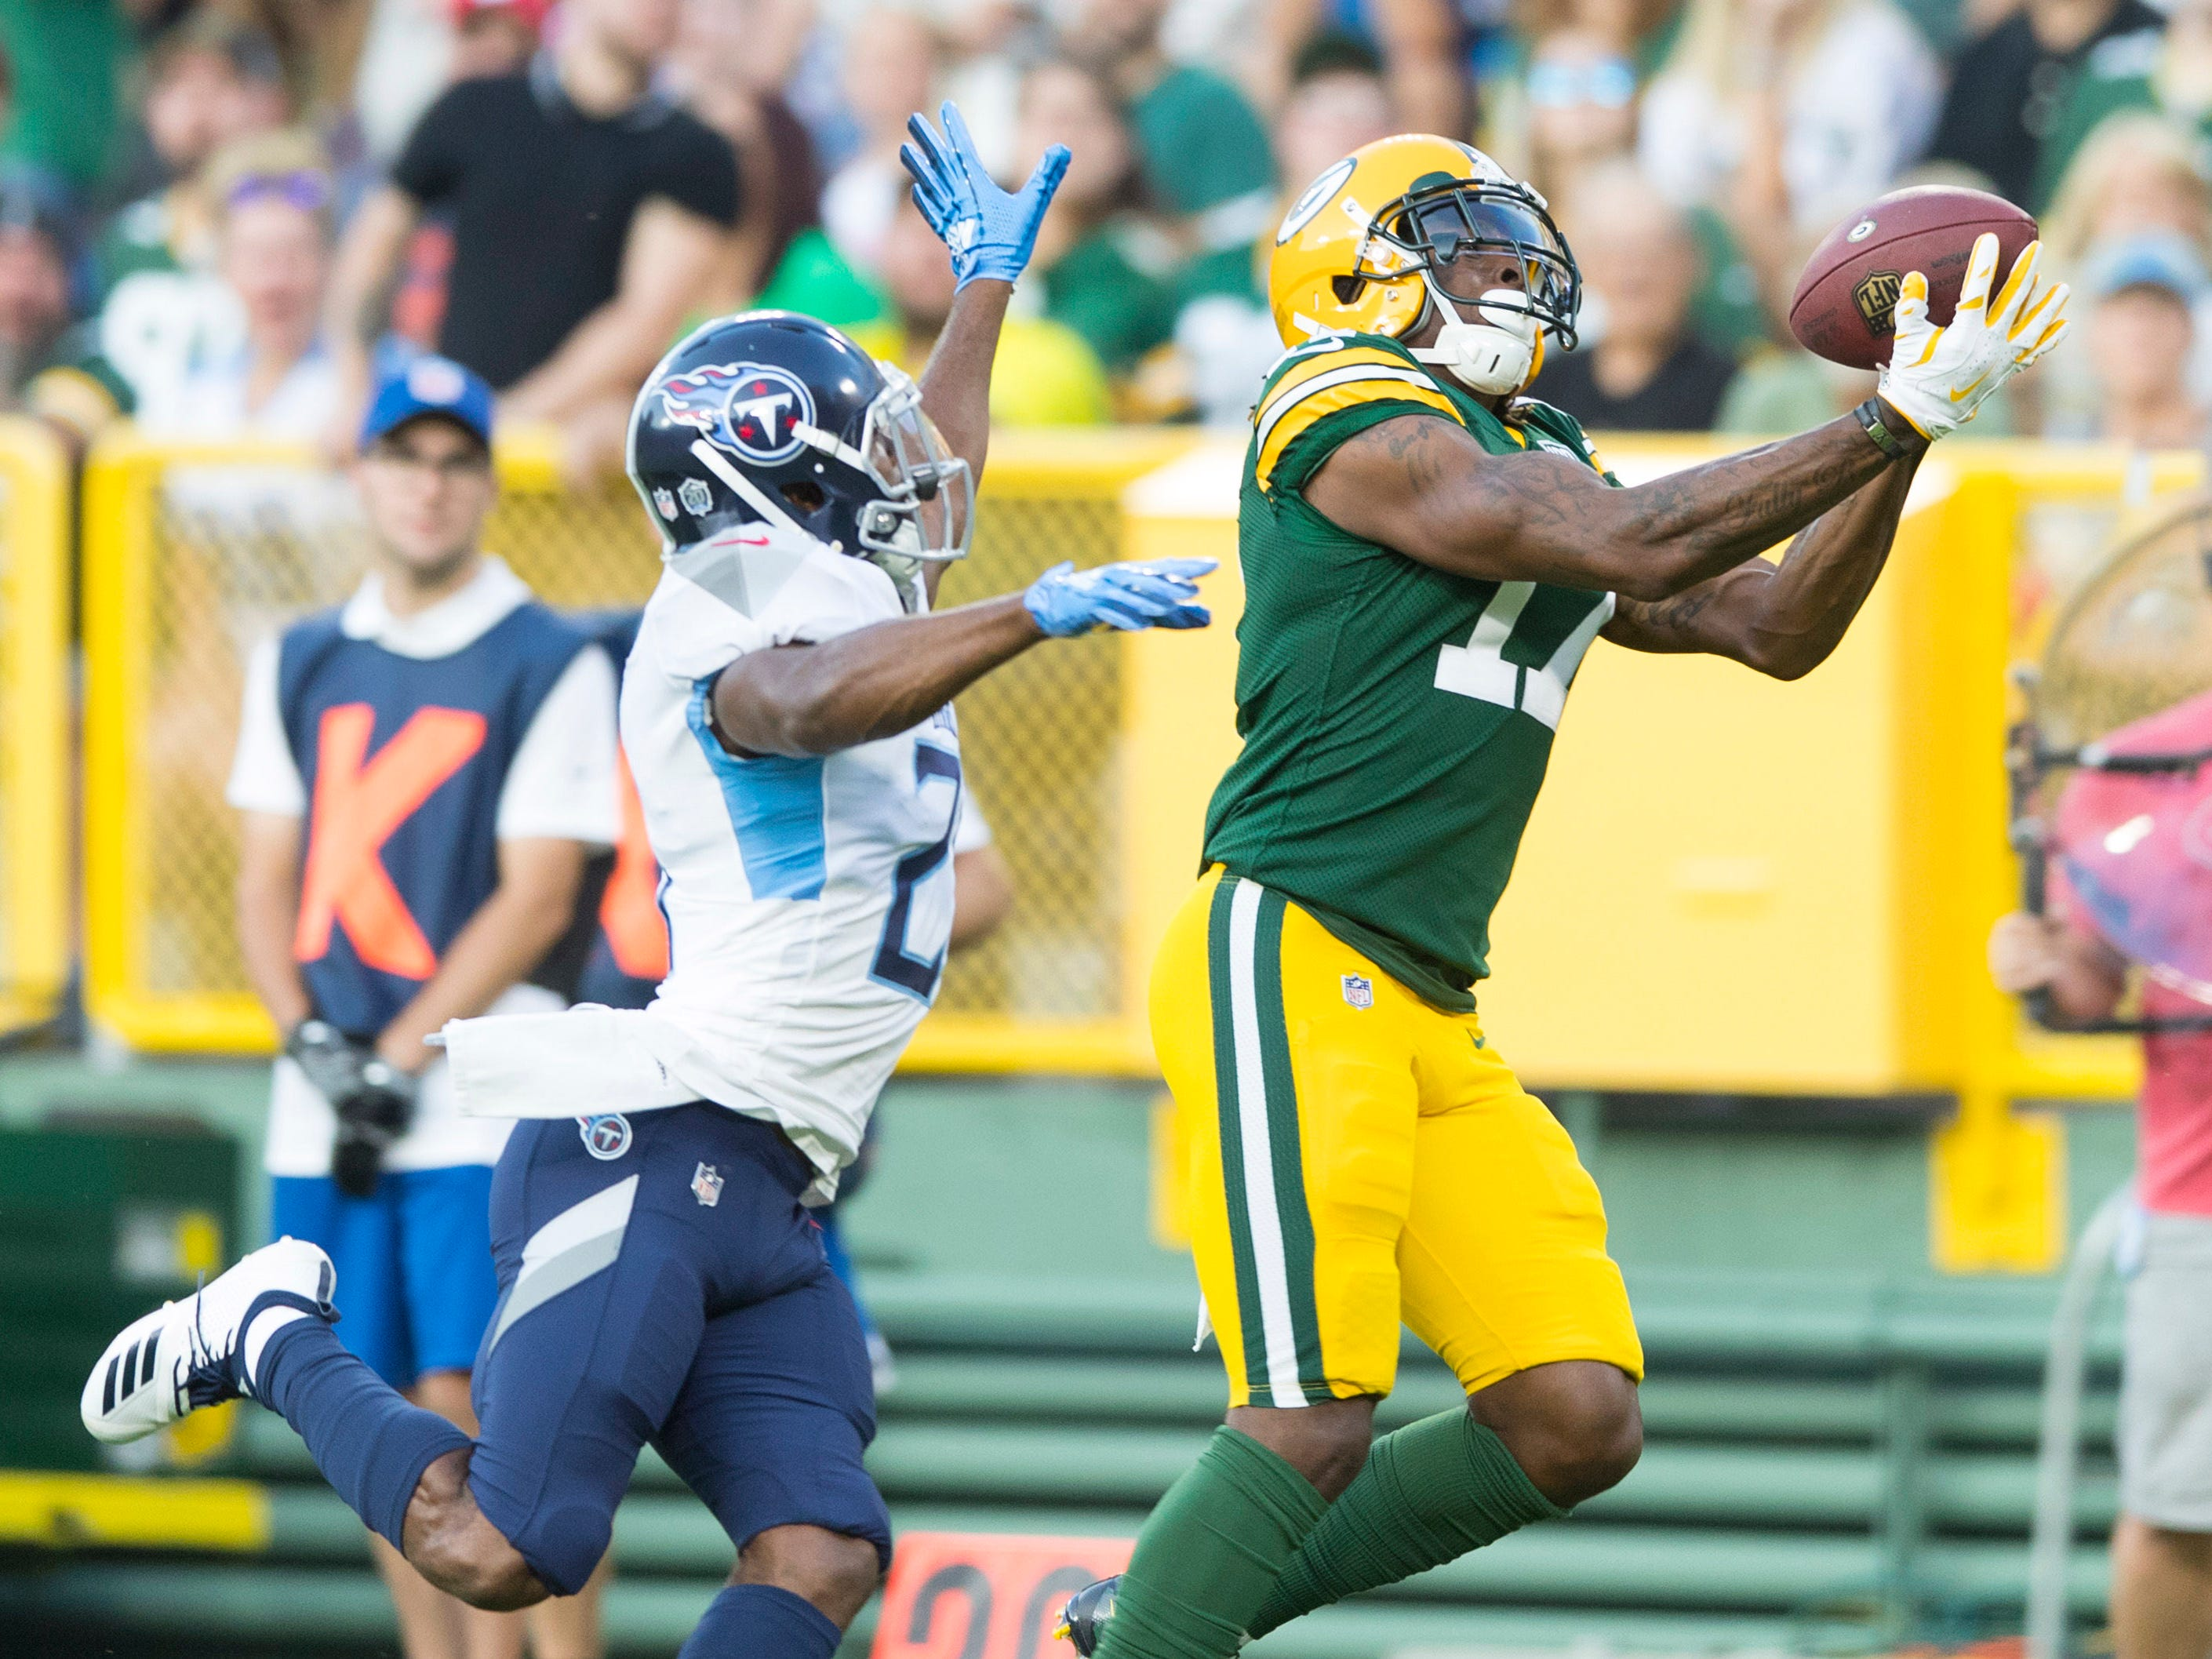 Green Bay Packers wide receiver Davante Adams (17) catches a pass during the first quarter against the Tennessee Titans at Lambeau Field.